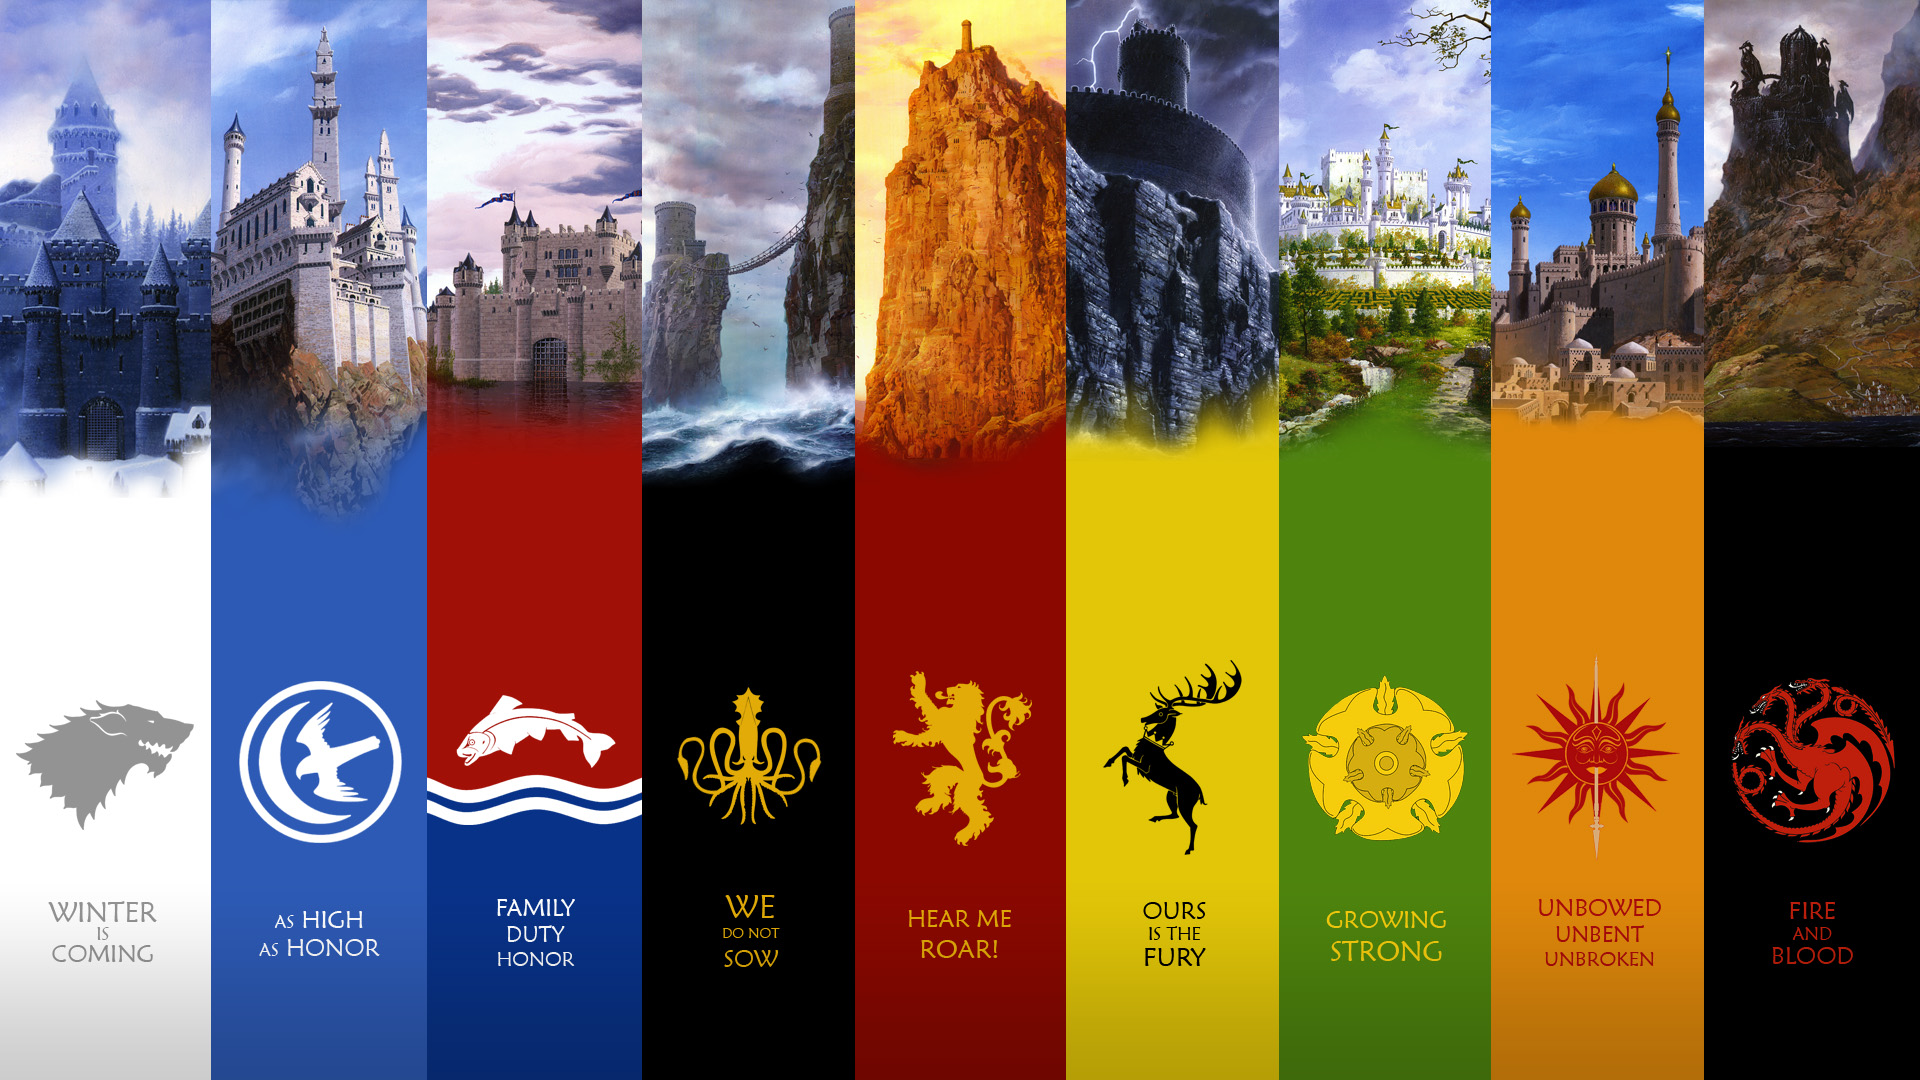 A Song Of Ice And Fire Houses A Song Of Ice And Fire Wallpaper